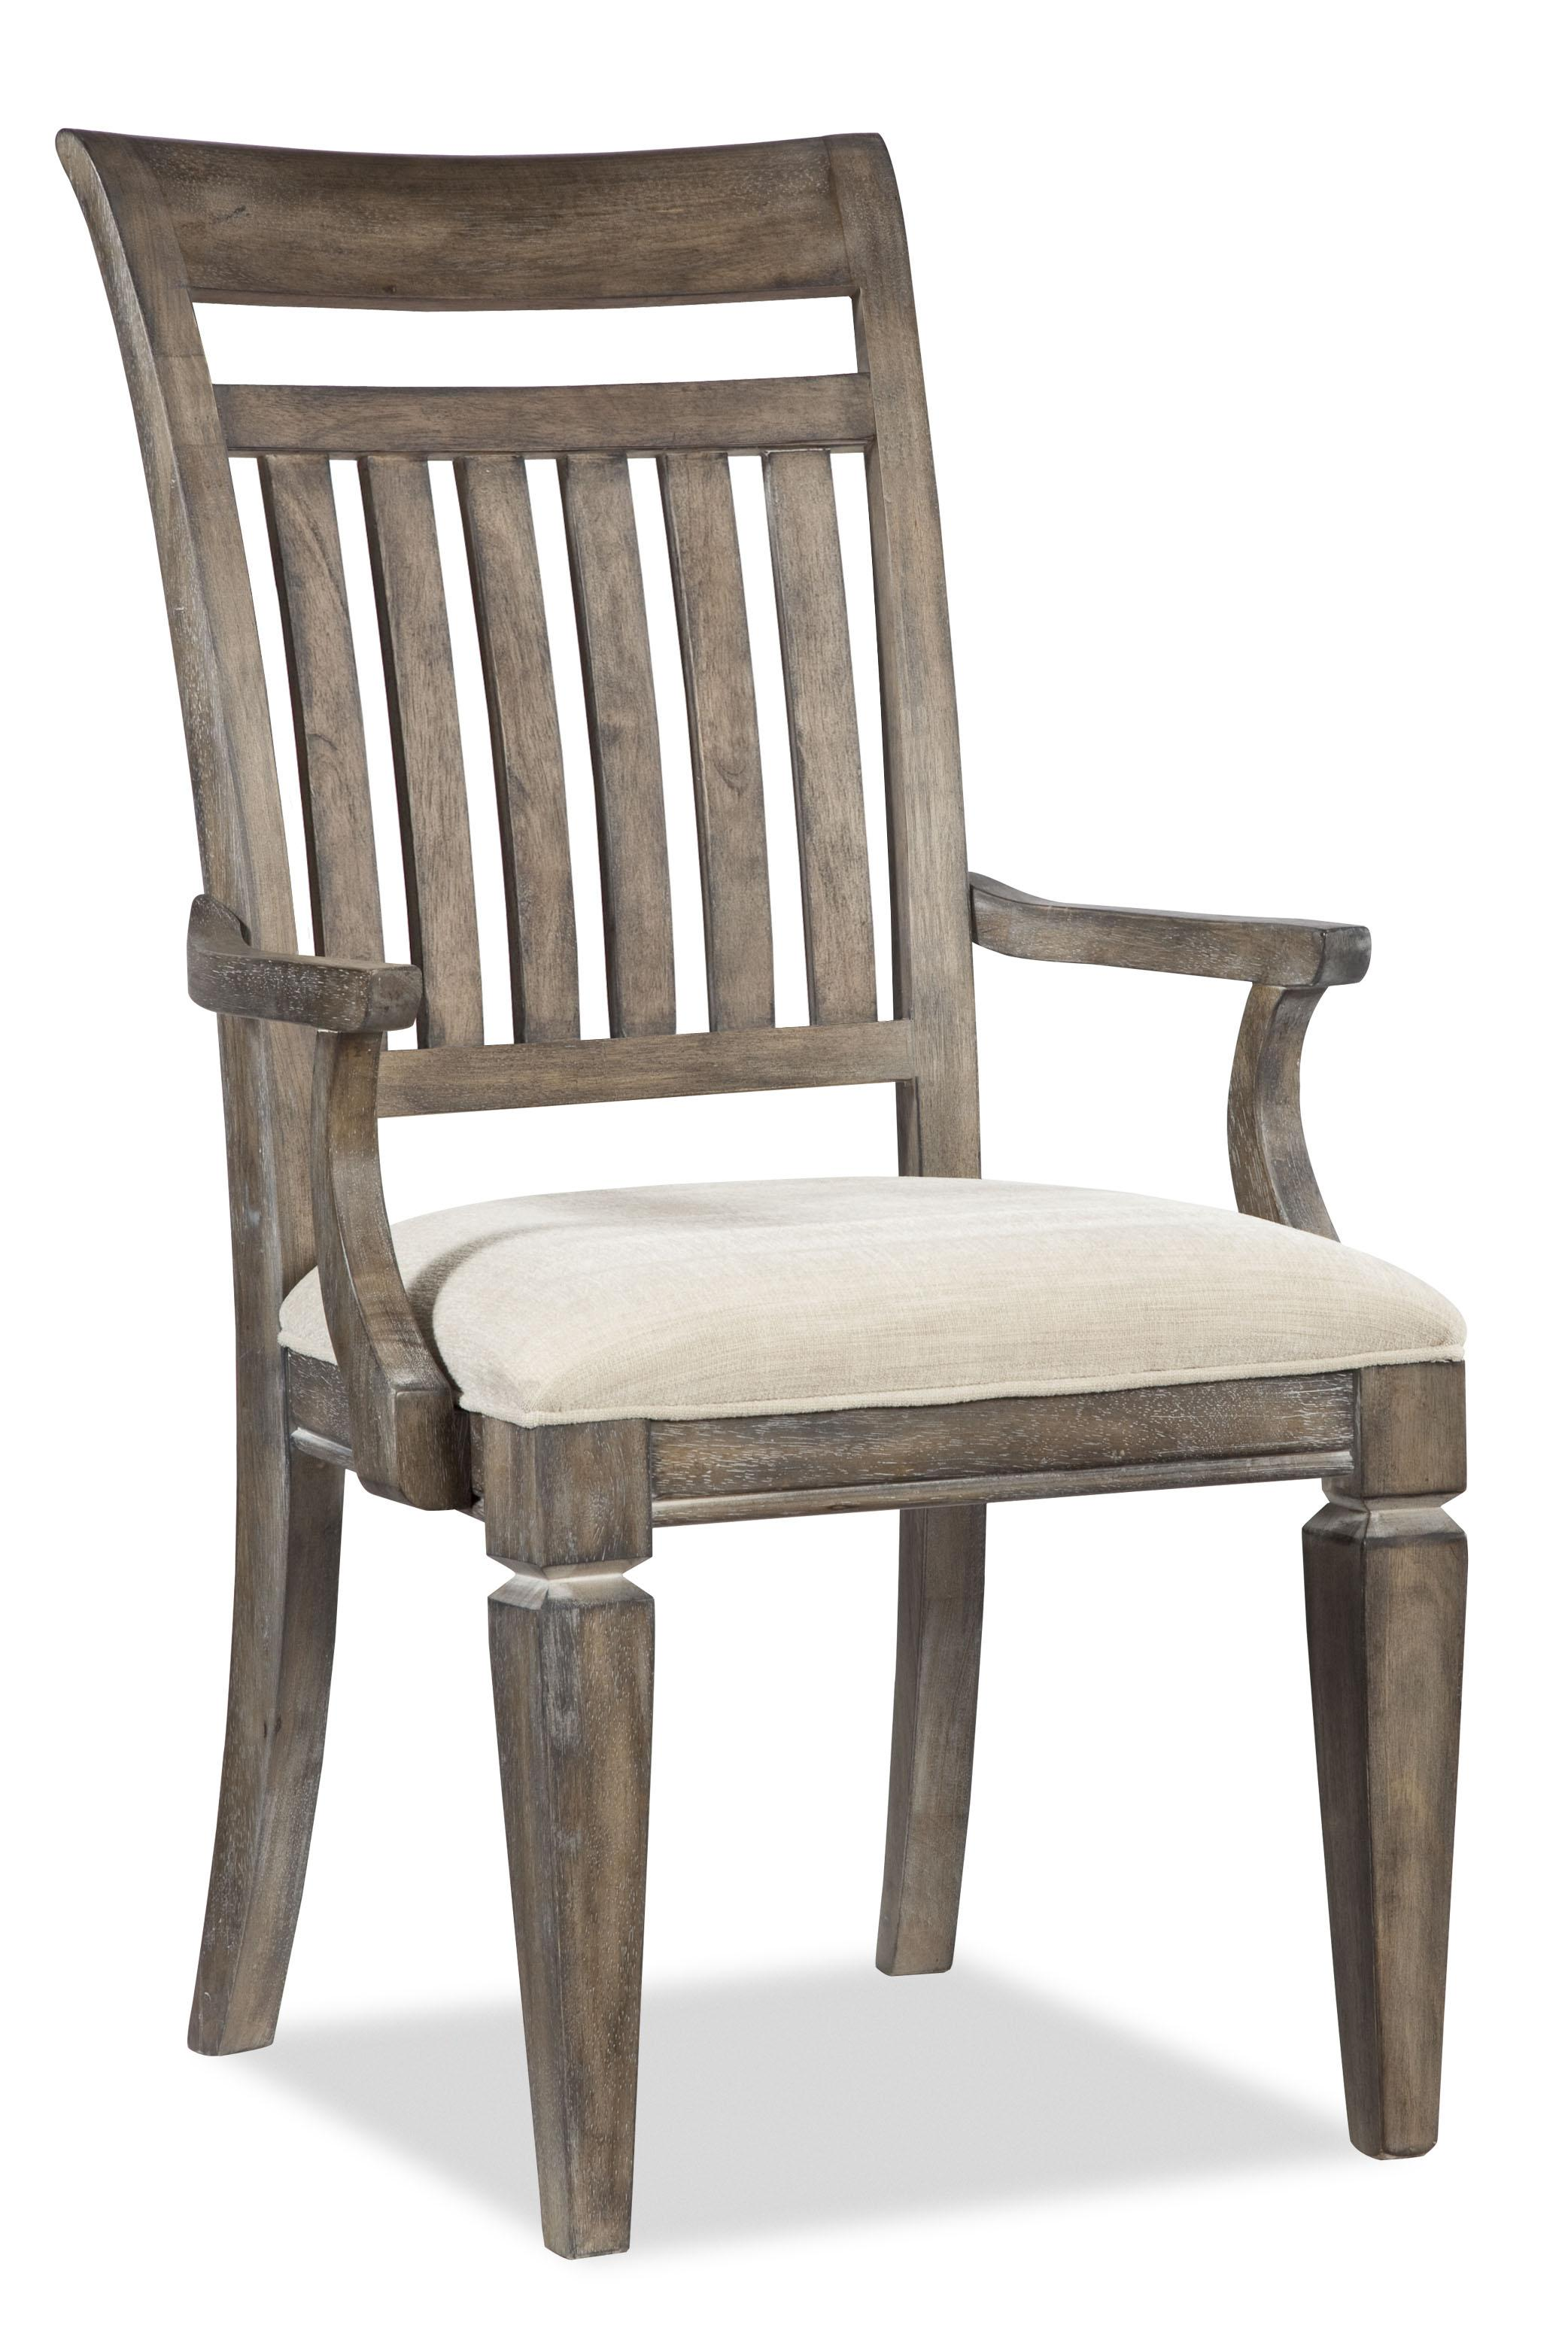 Legacy Classic Brownstone Village Slat Back Arm Chair - Item Number: 2760-341 KD